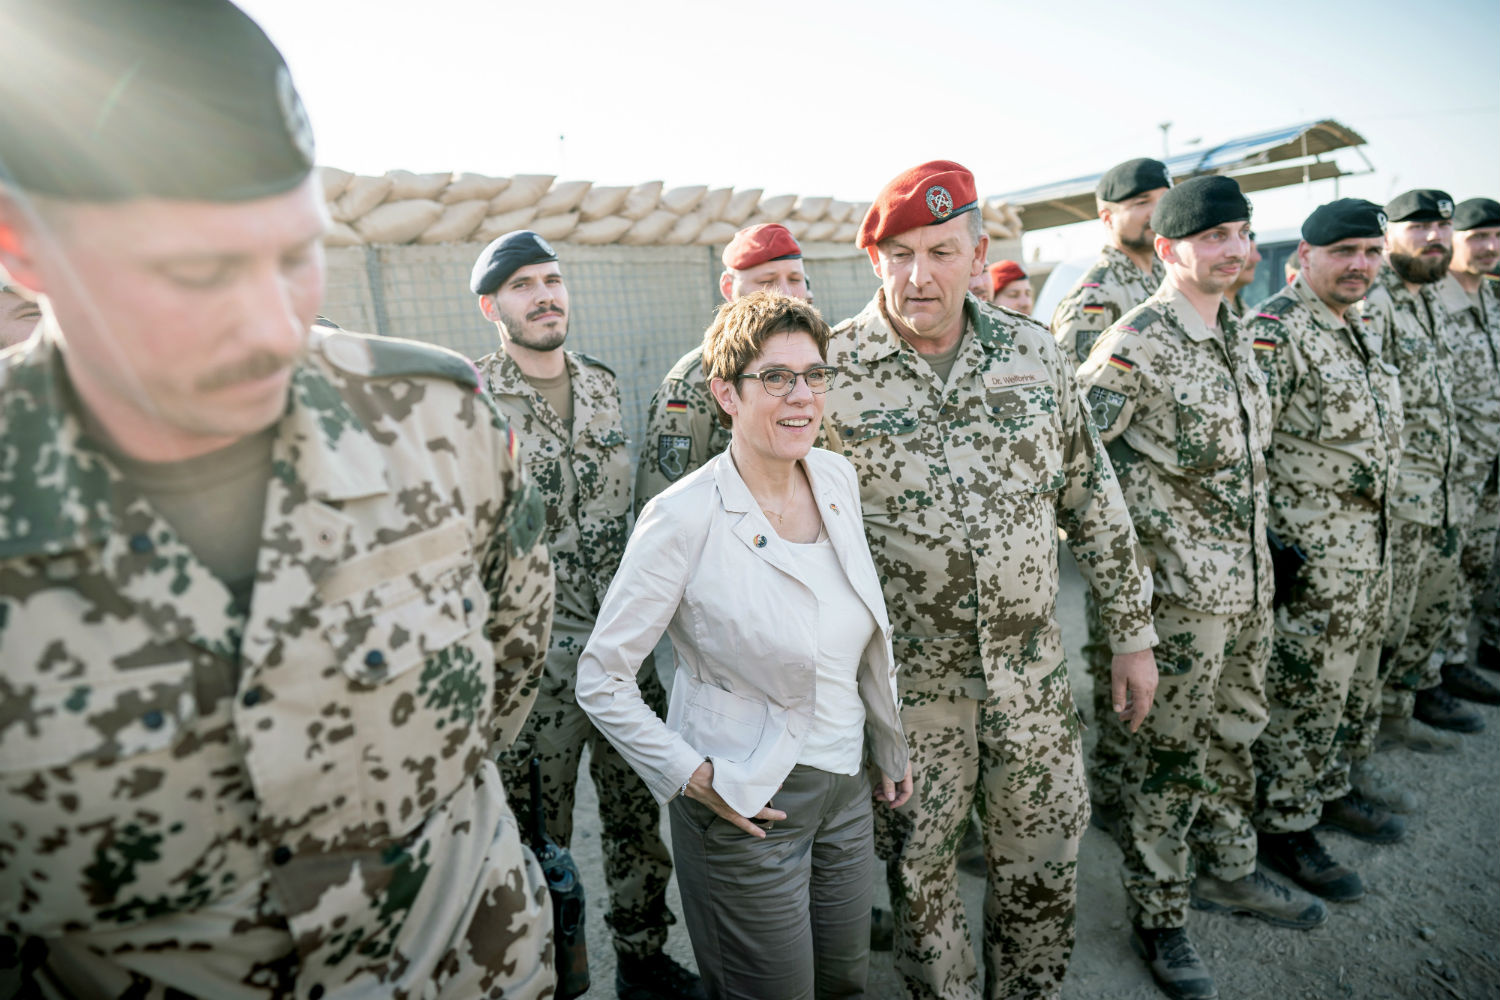 Germany withdraws some troops from Iraq as tensions soar